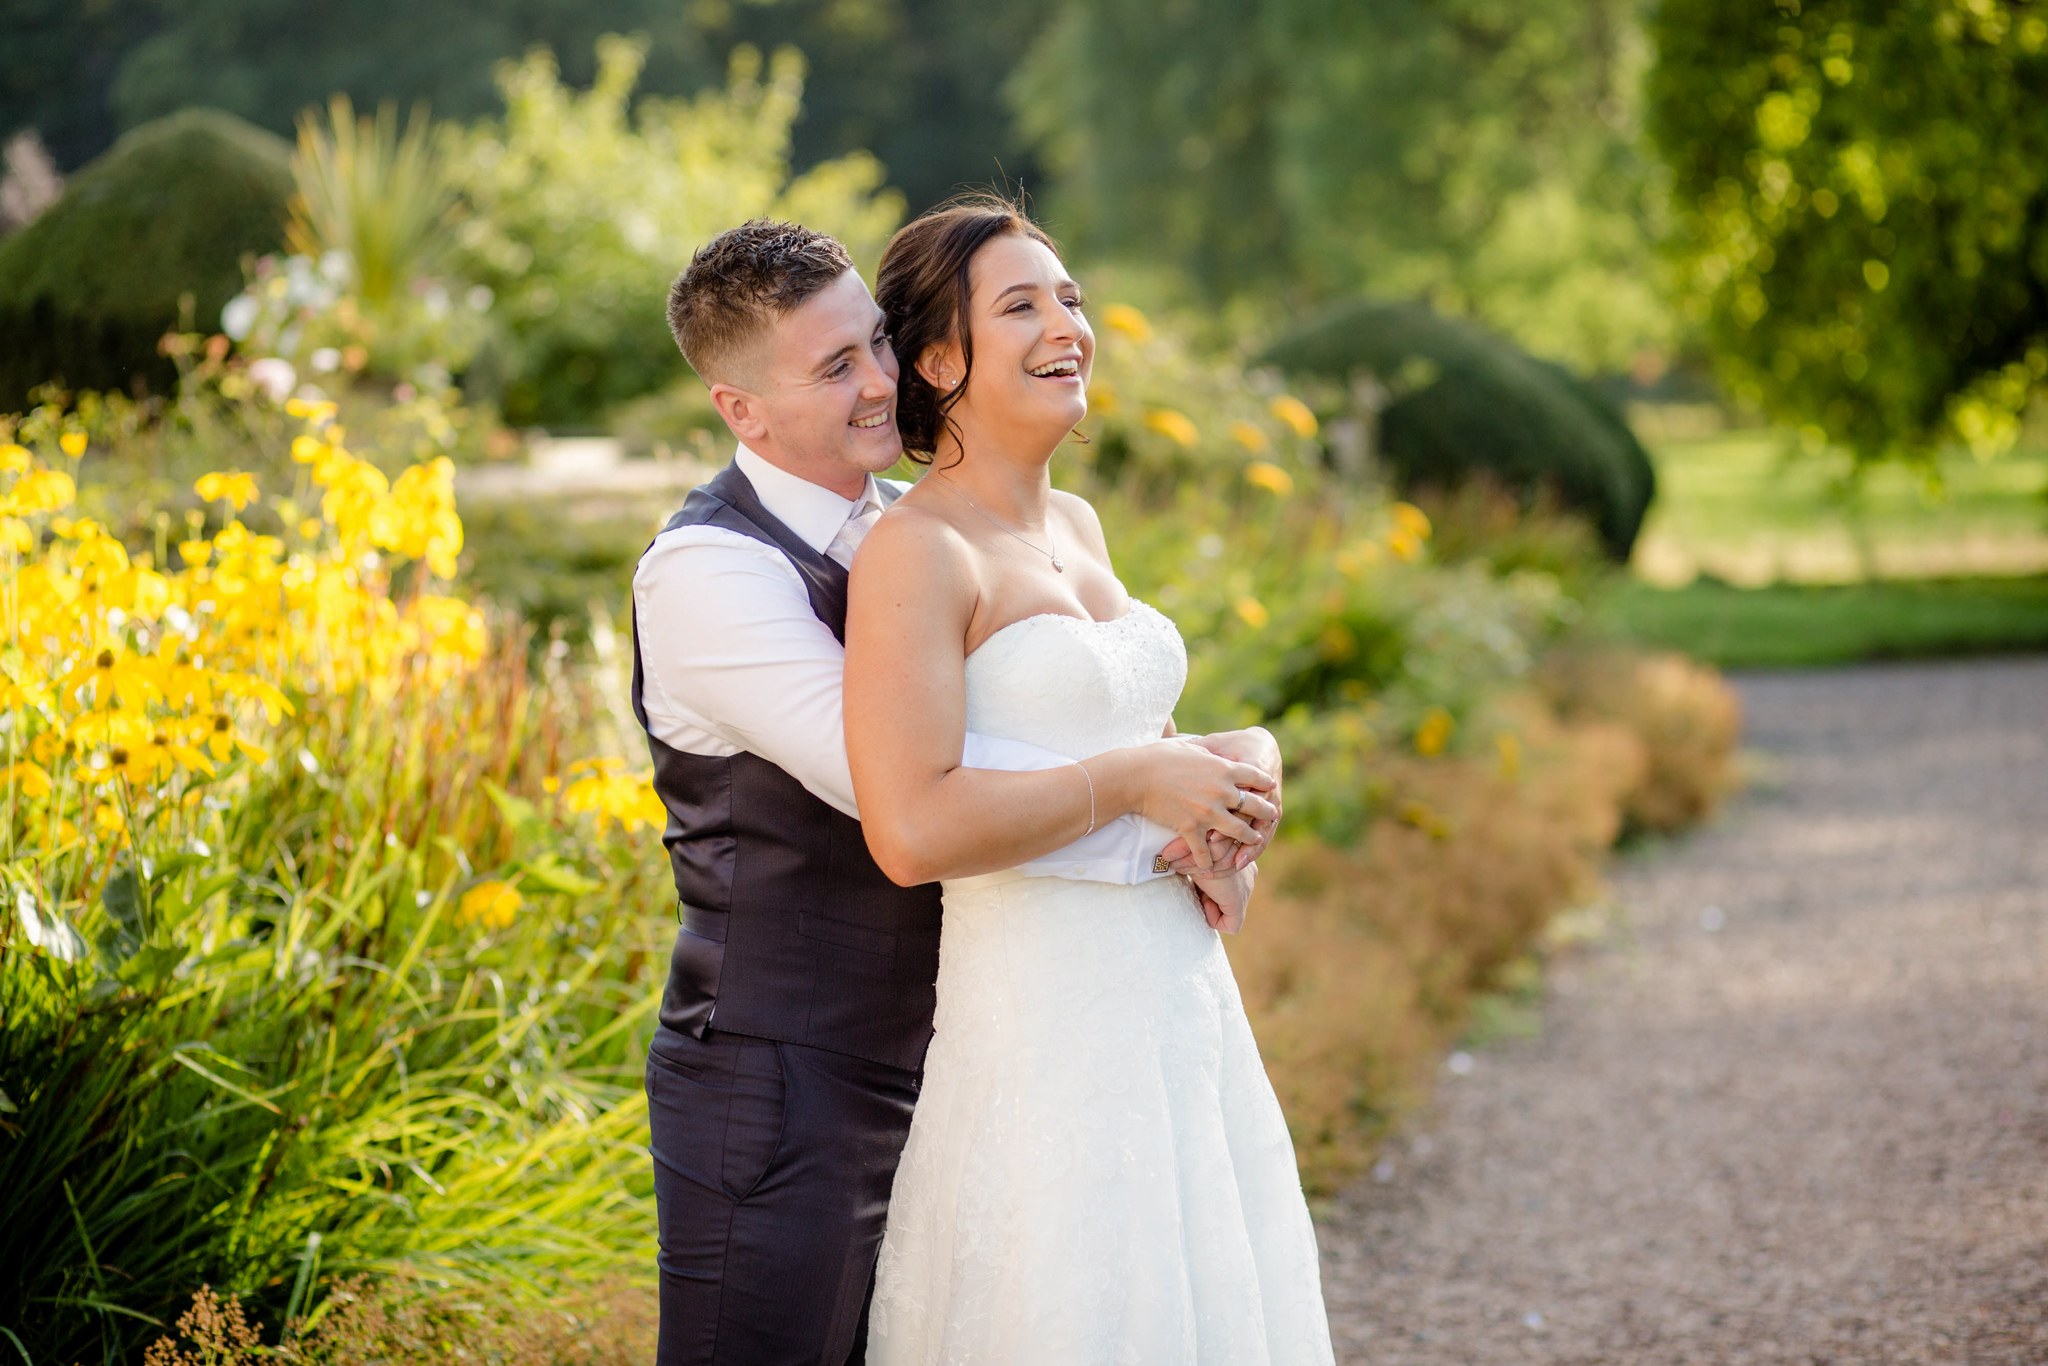 Iscoyd Park wedding couple warm sunset